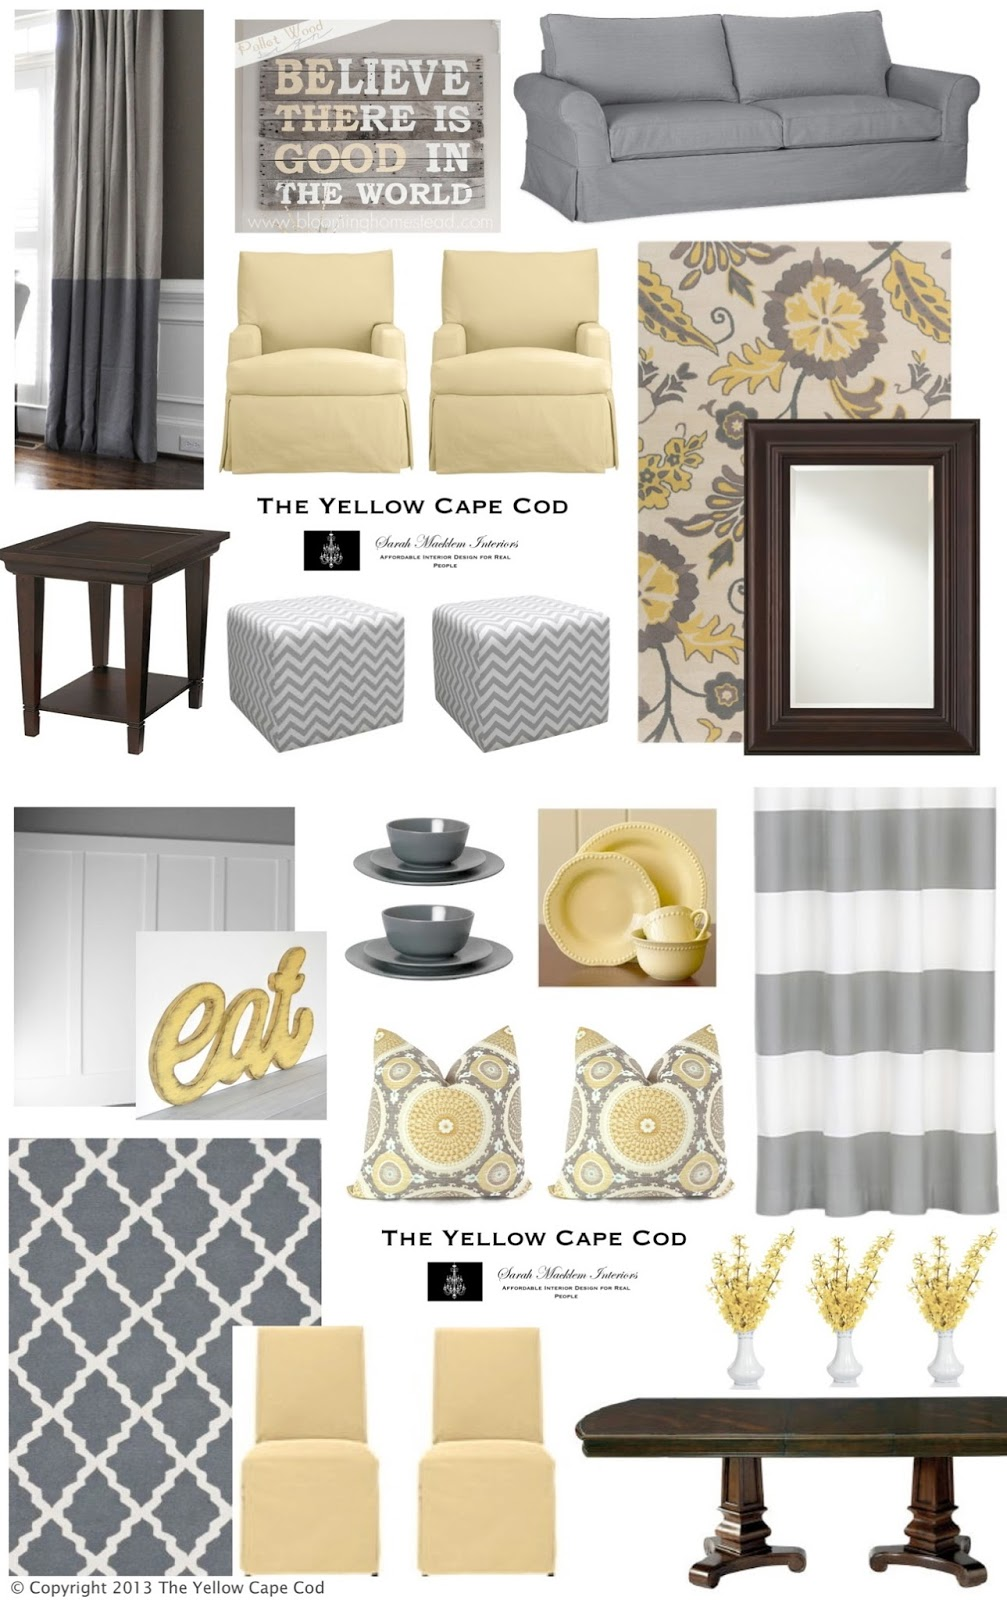 Along With These Inspiration Boards, We Provided Our Client With A  True To Scale Floorplan Of Each Room Illustrating The Furniture/accessory  Placement ... Part 79